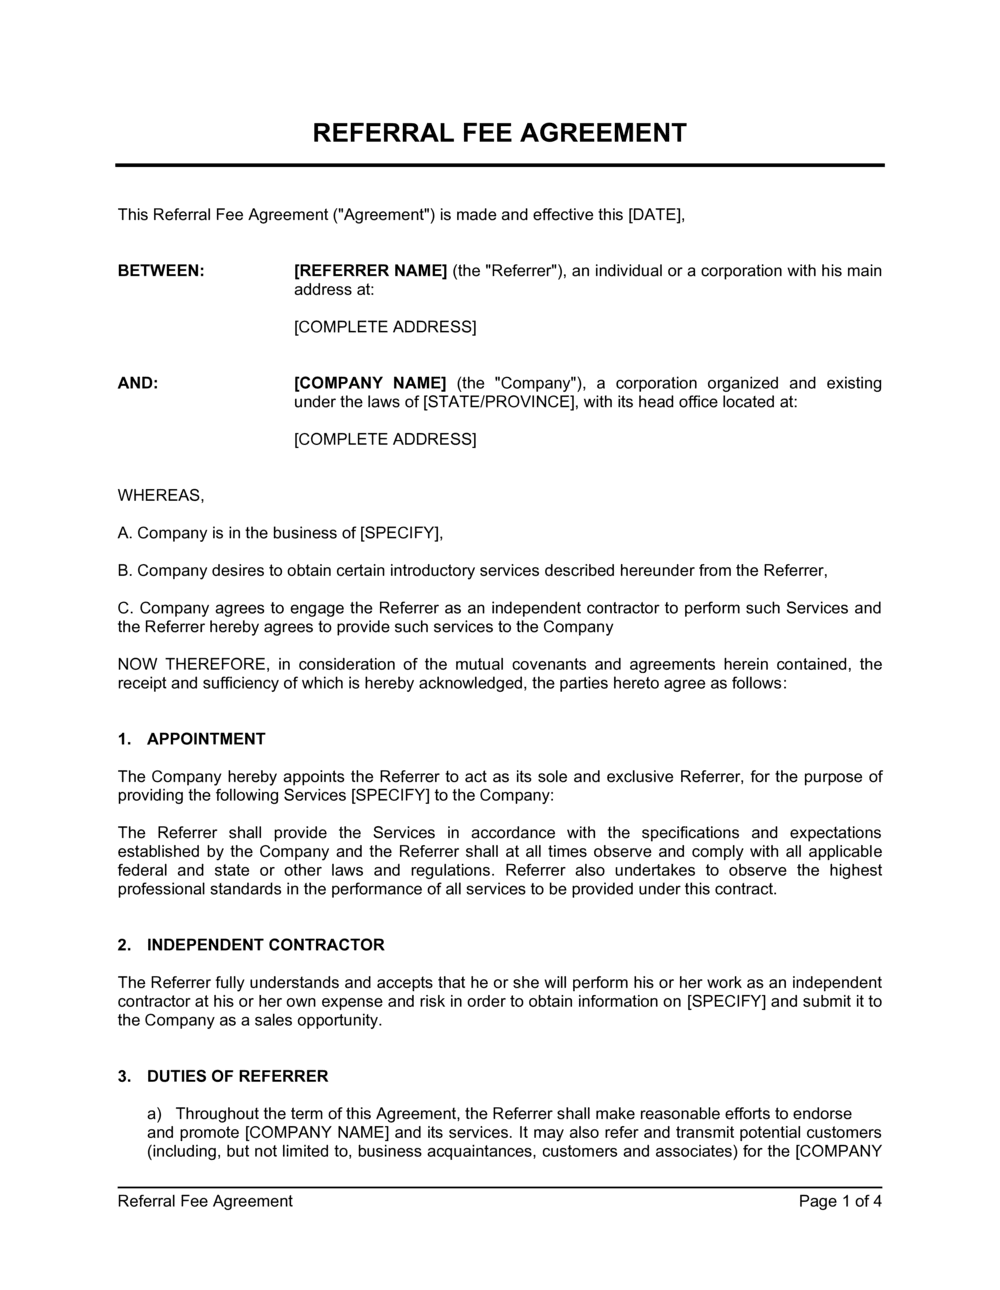 Business-in-a-Box's Referral Fee Agreement Template